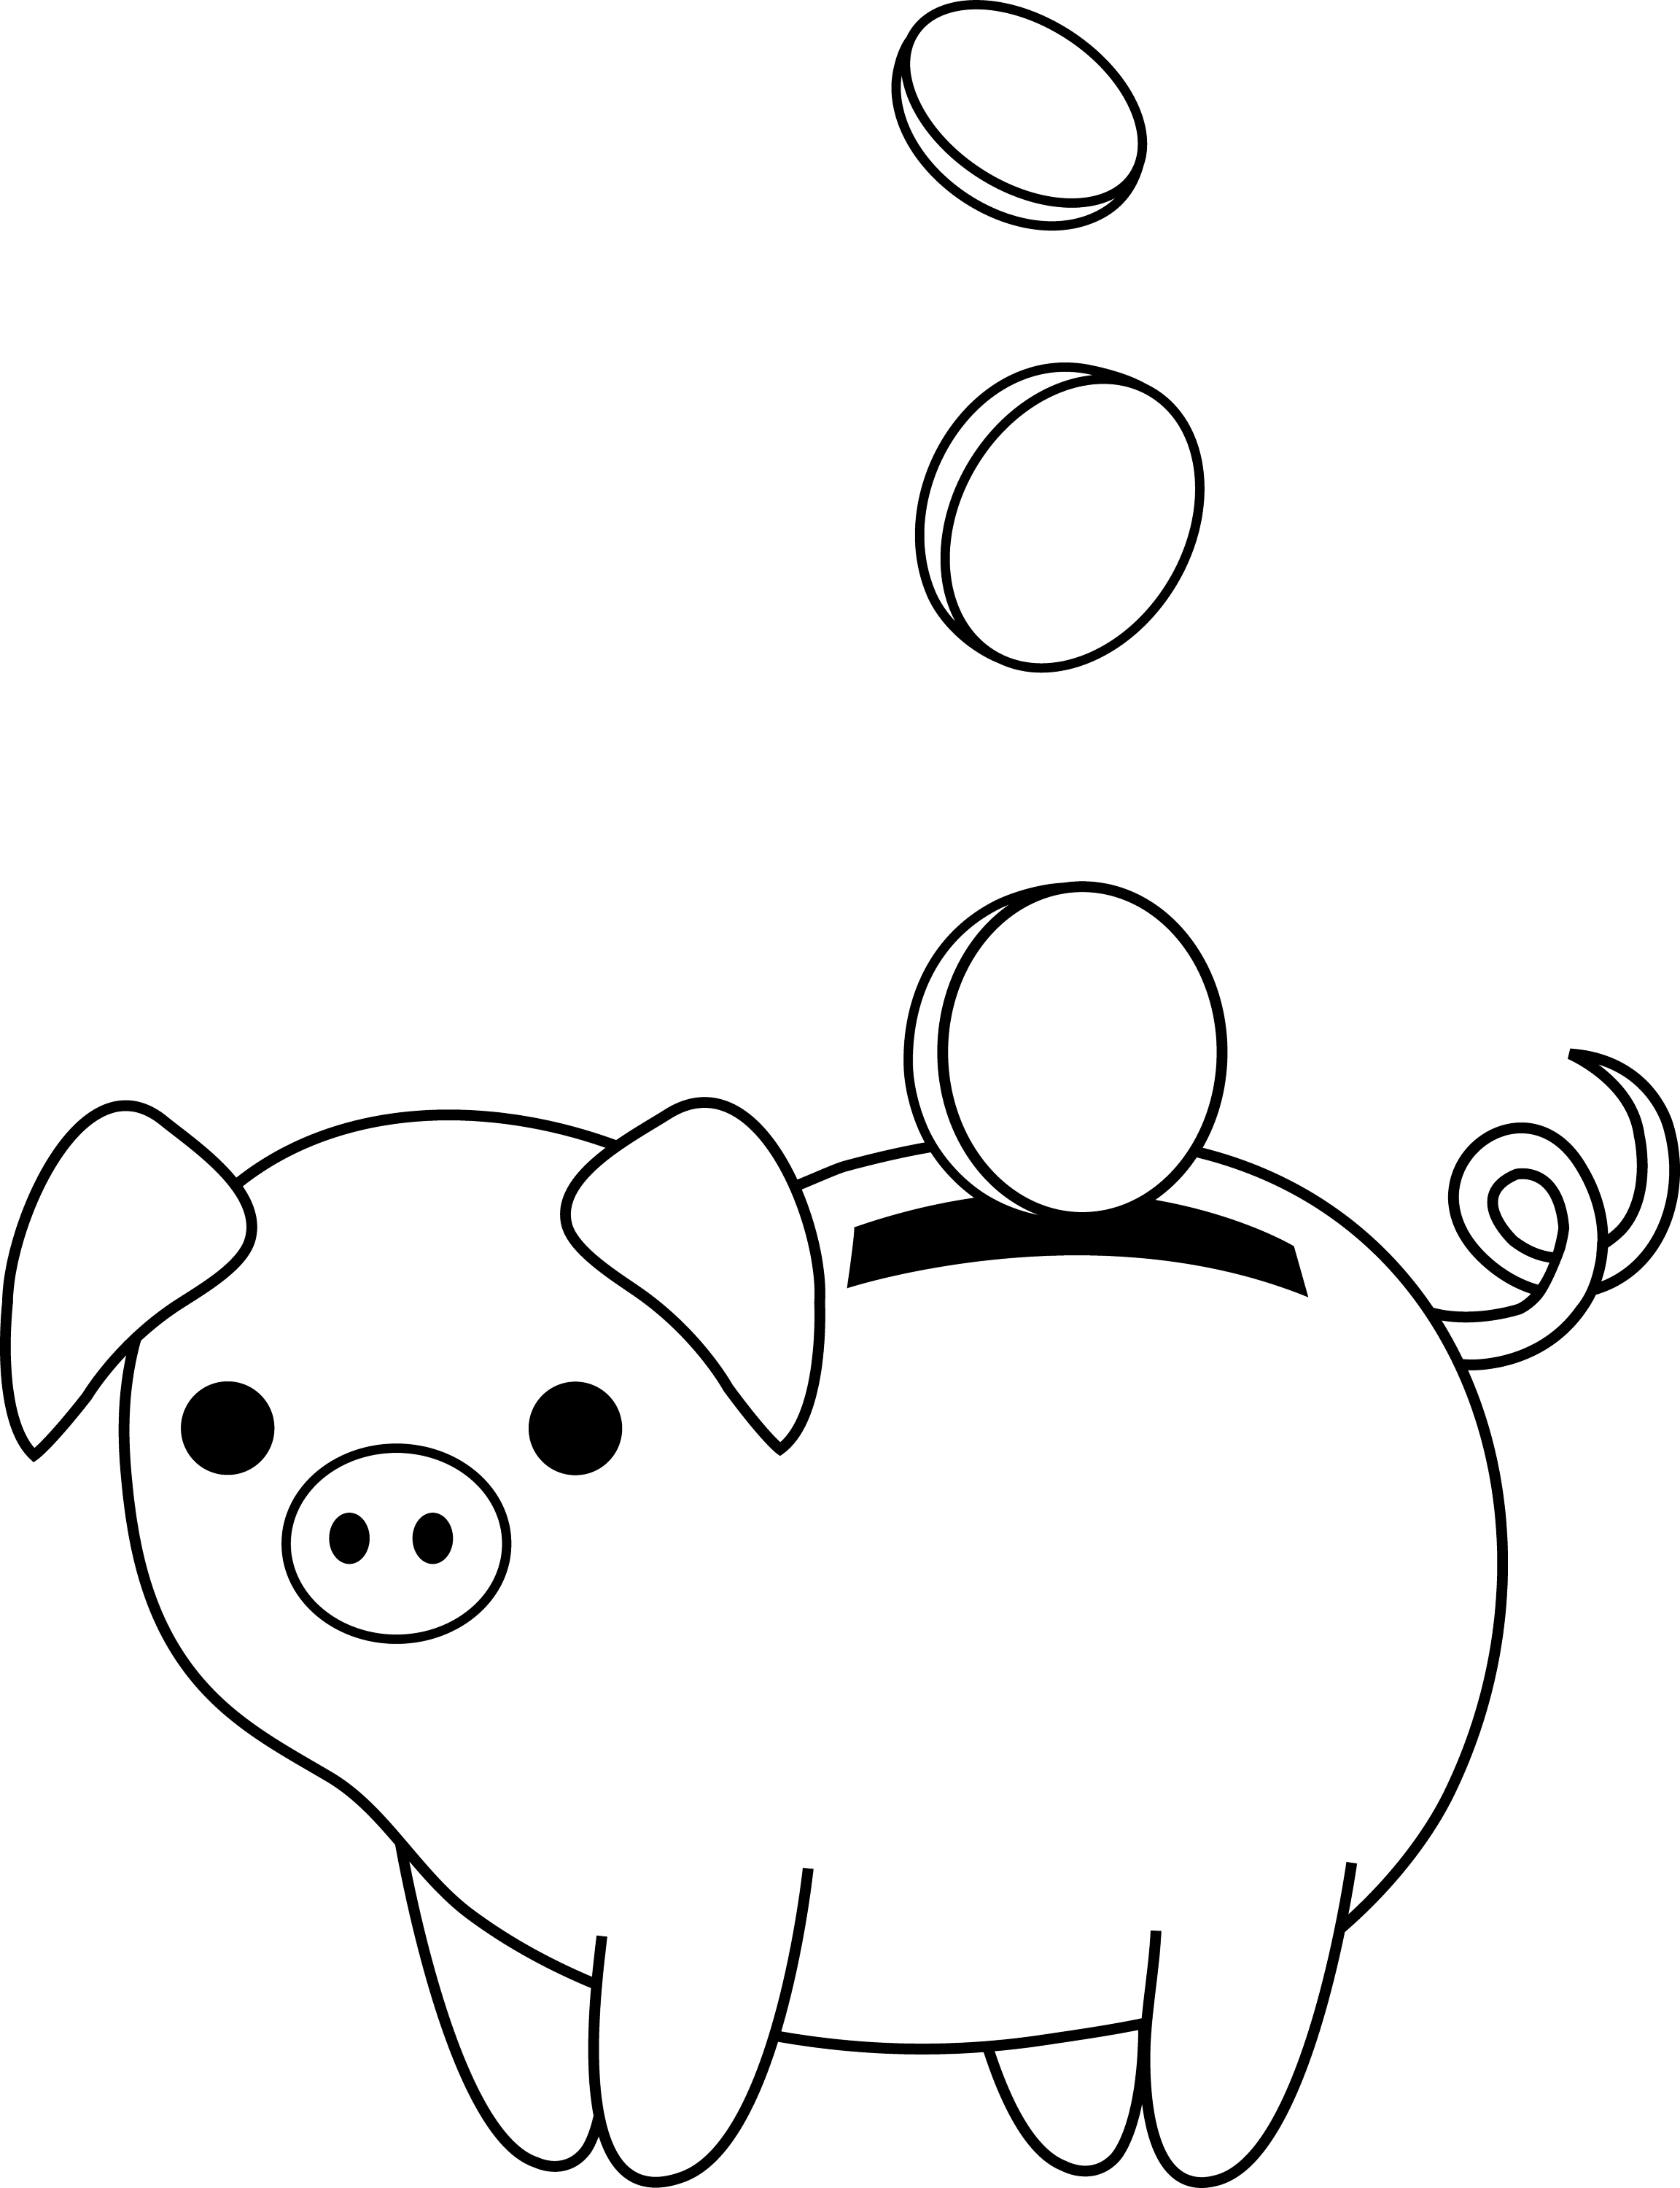 Line Drawing Piggy Bank : Piggy bank colorable line art free clip